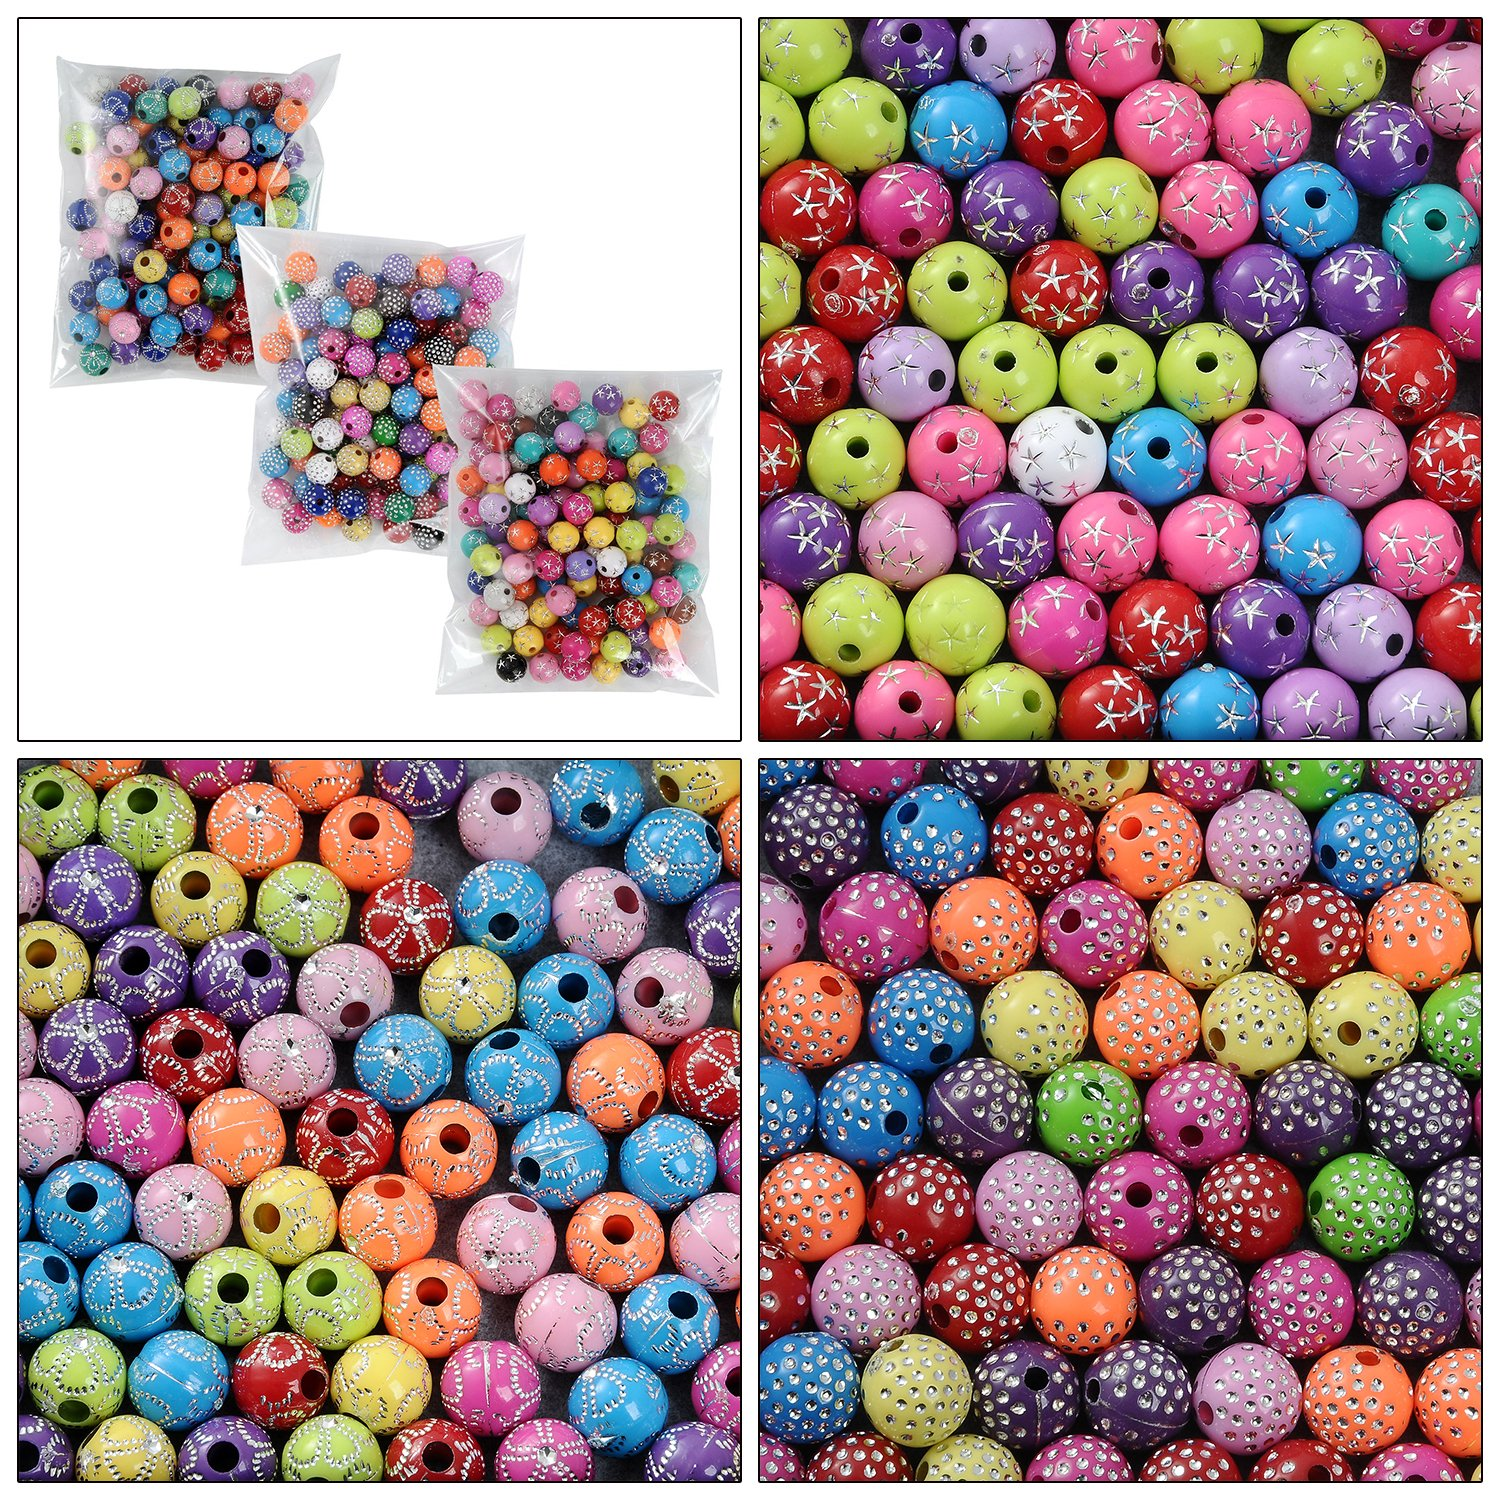 YUEAON 300pcs 8mm acrylic round beads ball loose bead for jewelry making diy bracelet necklace earring charms supplies , 3 bags-styles 4336812412